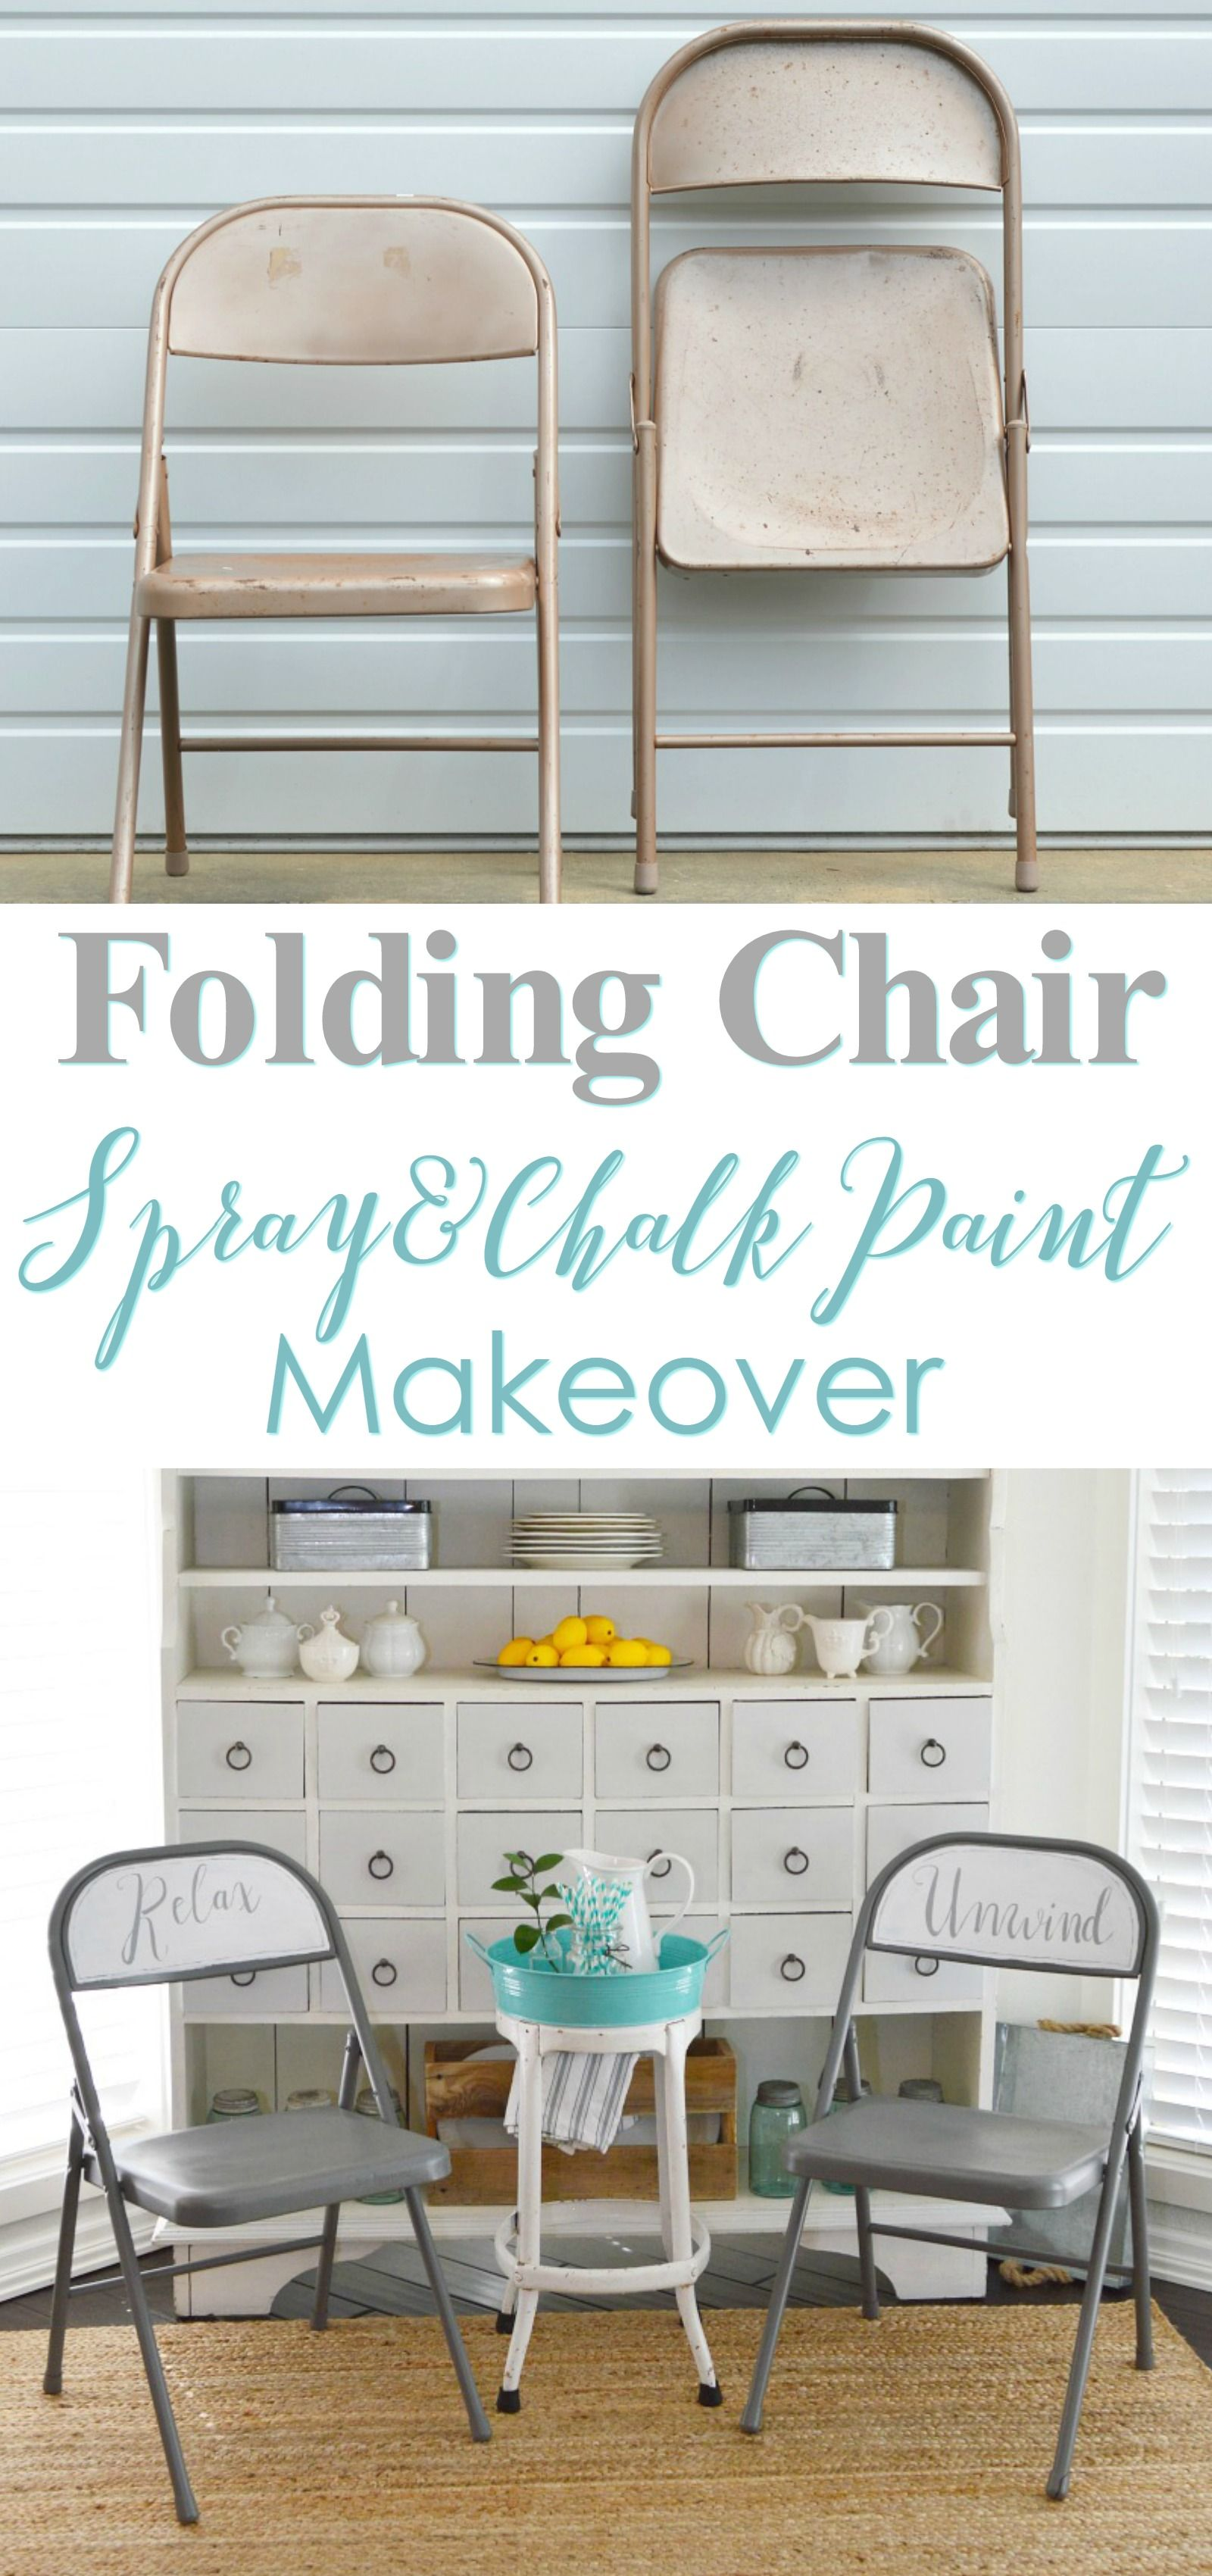 She Bought Old Metal Folding Chairs From The Thrift Store, And Made Them  Over With